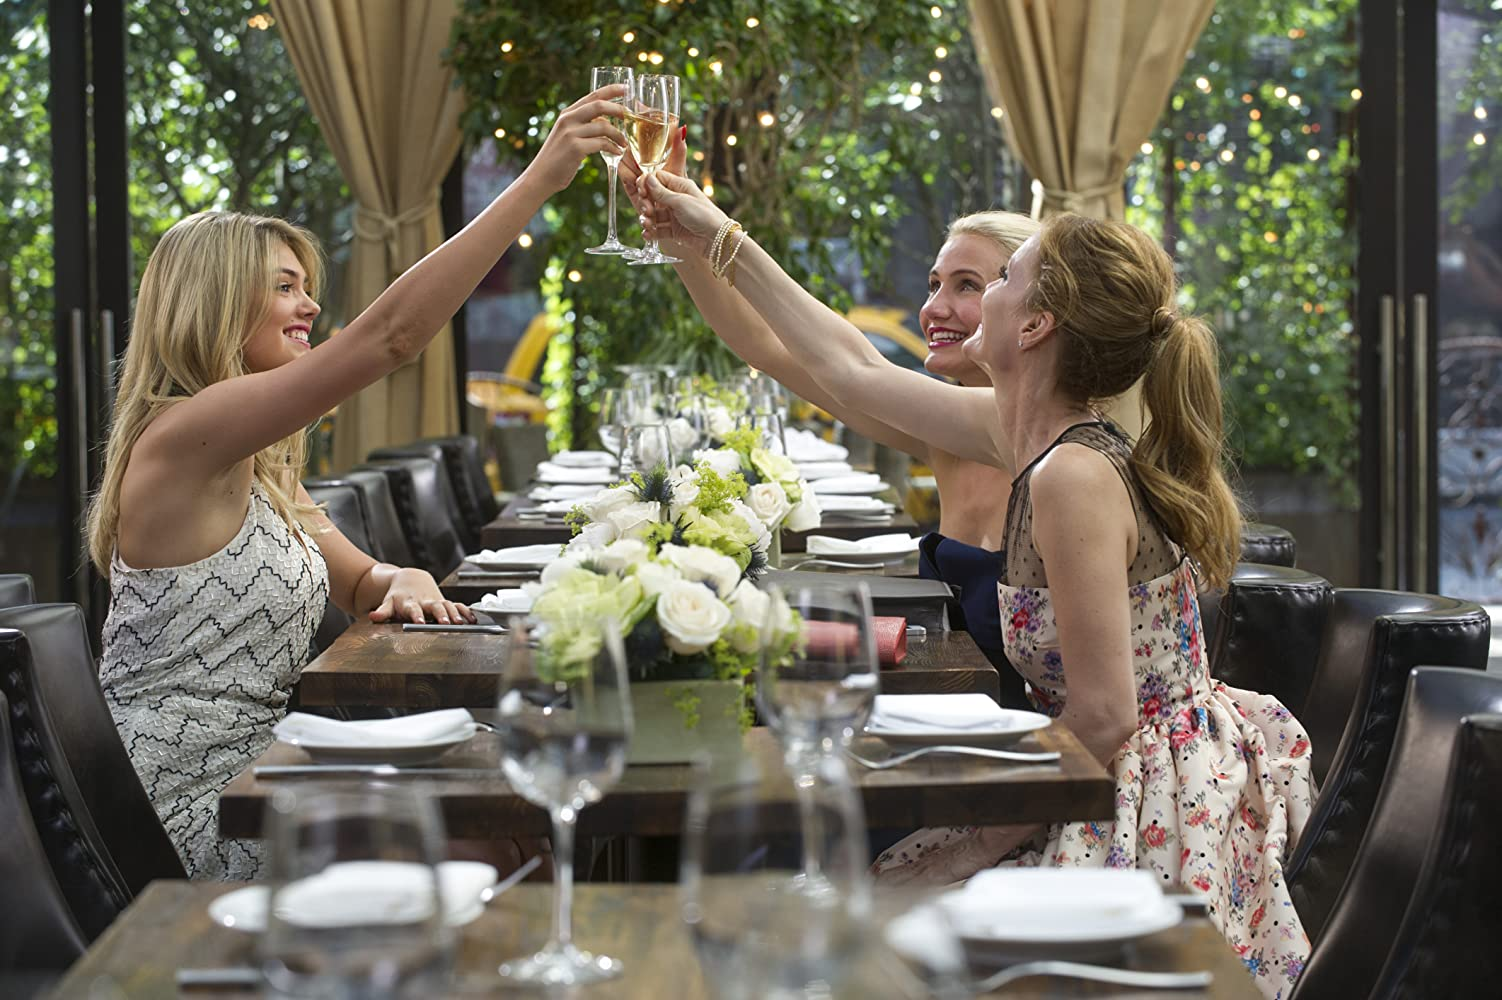 Cameron Diaz, Leslie Mann, and Kate Upton in The Other Woman (2014)